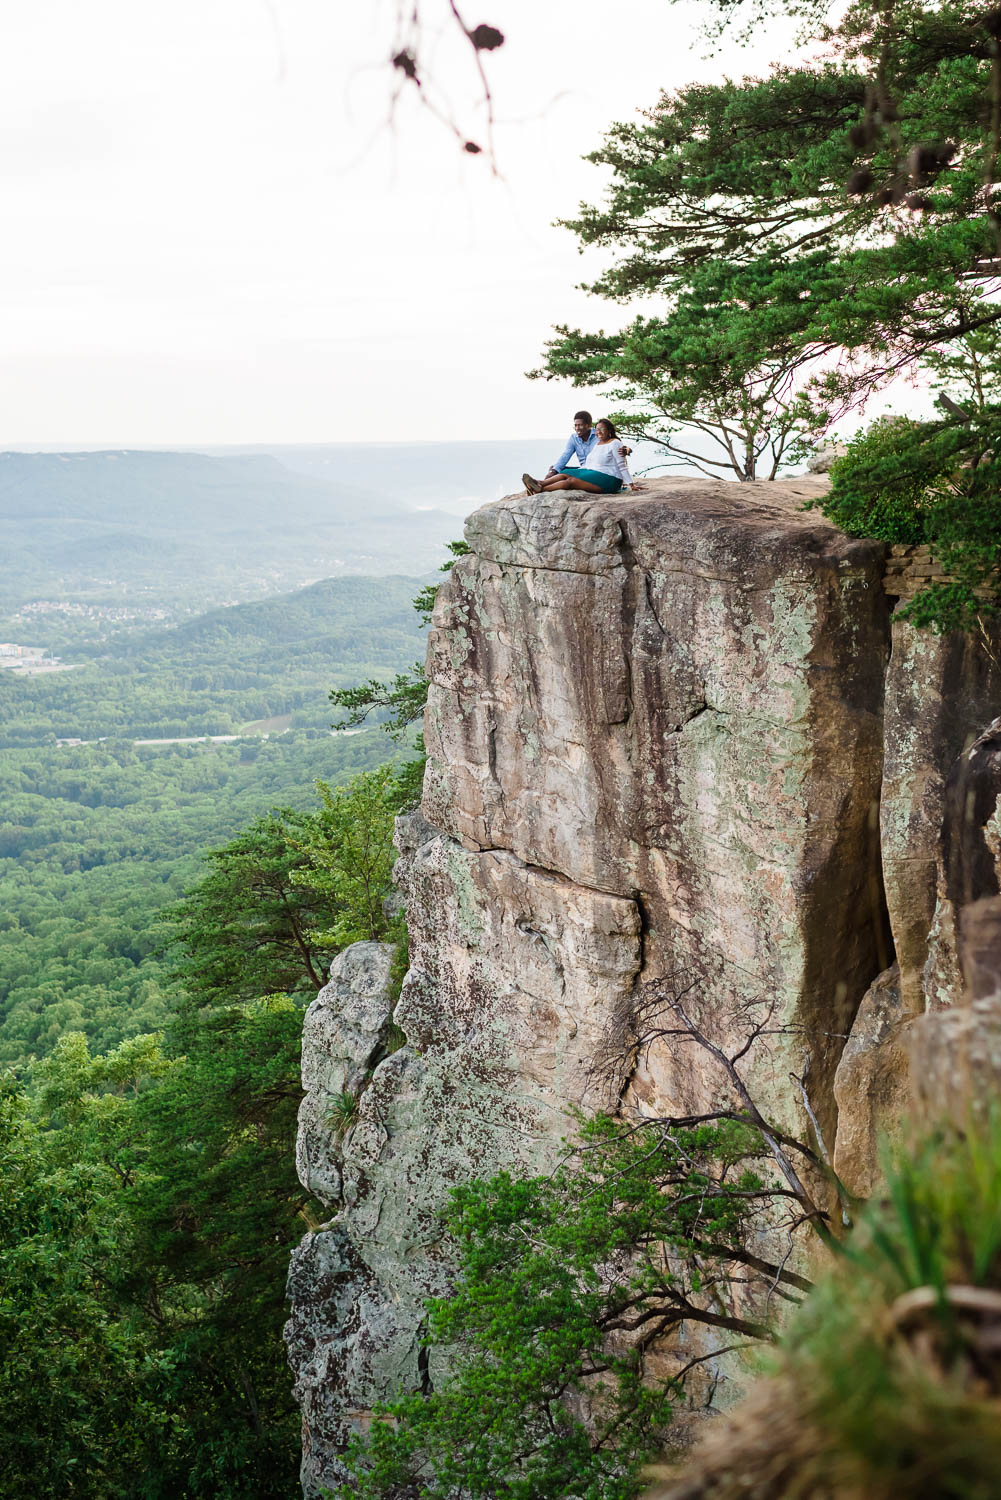 sunset rock in chattanooga with two people sitting on the top